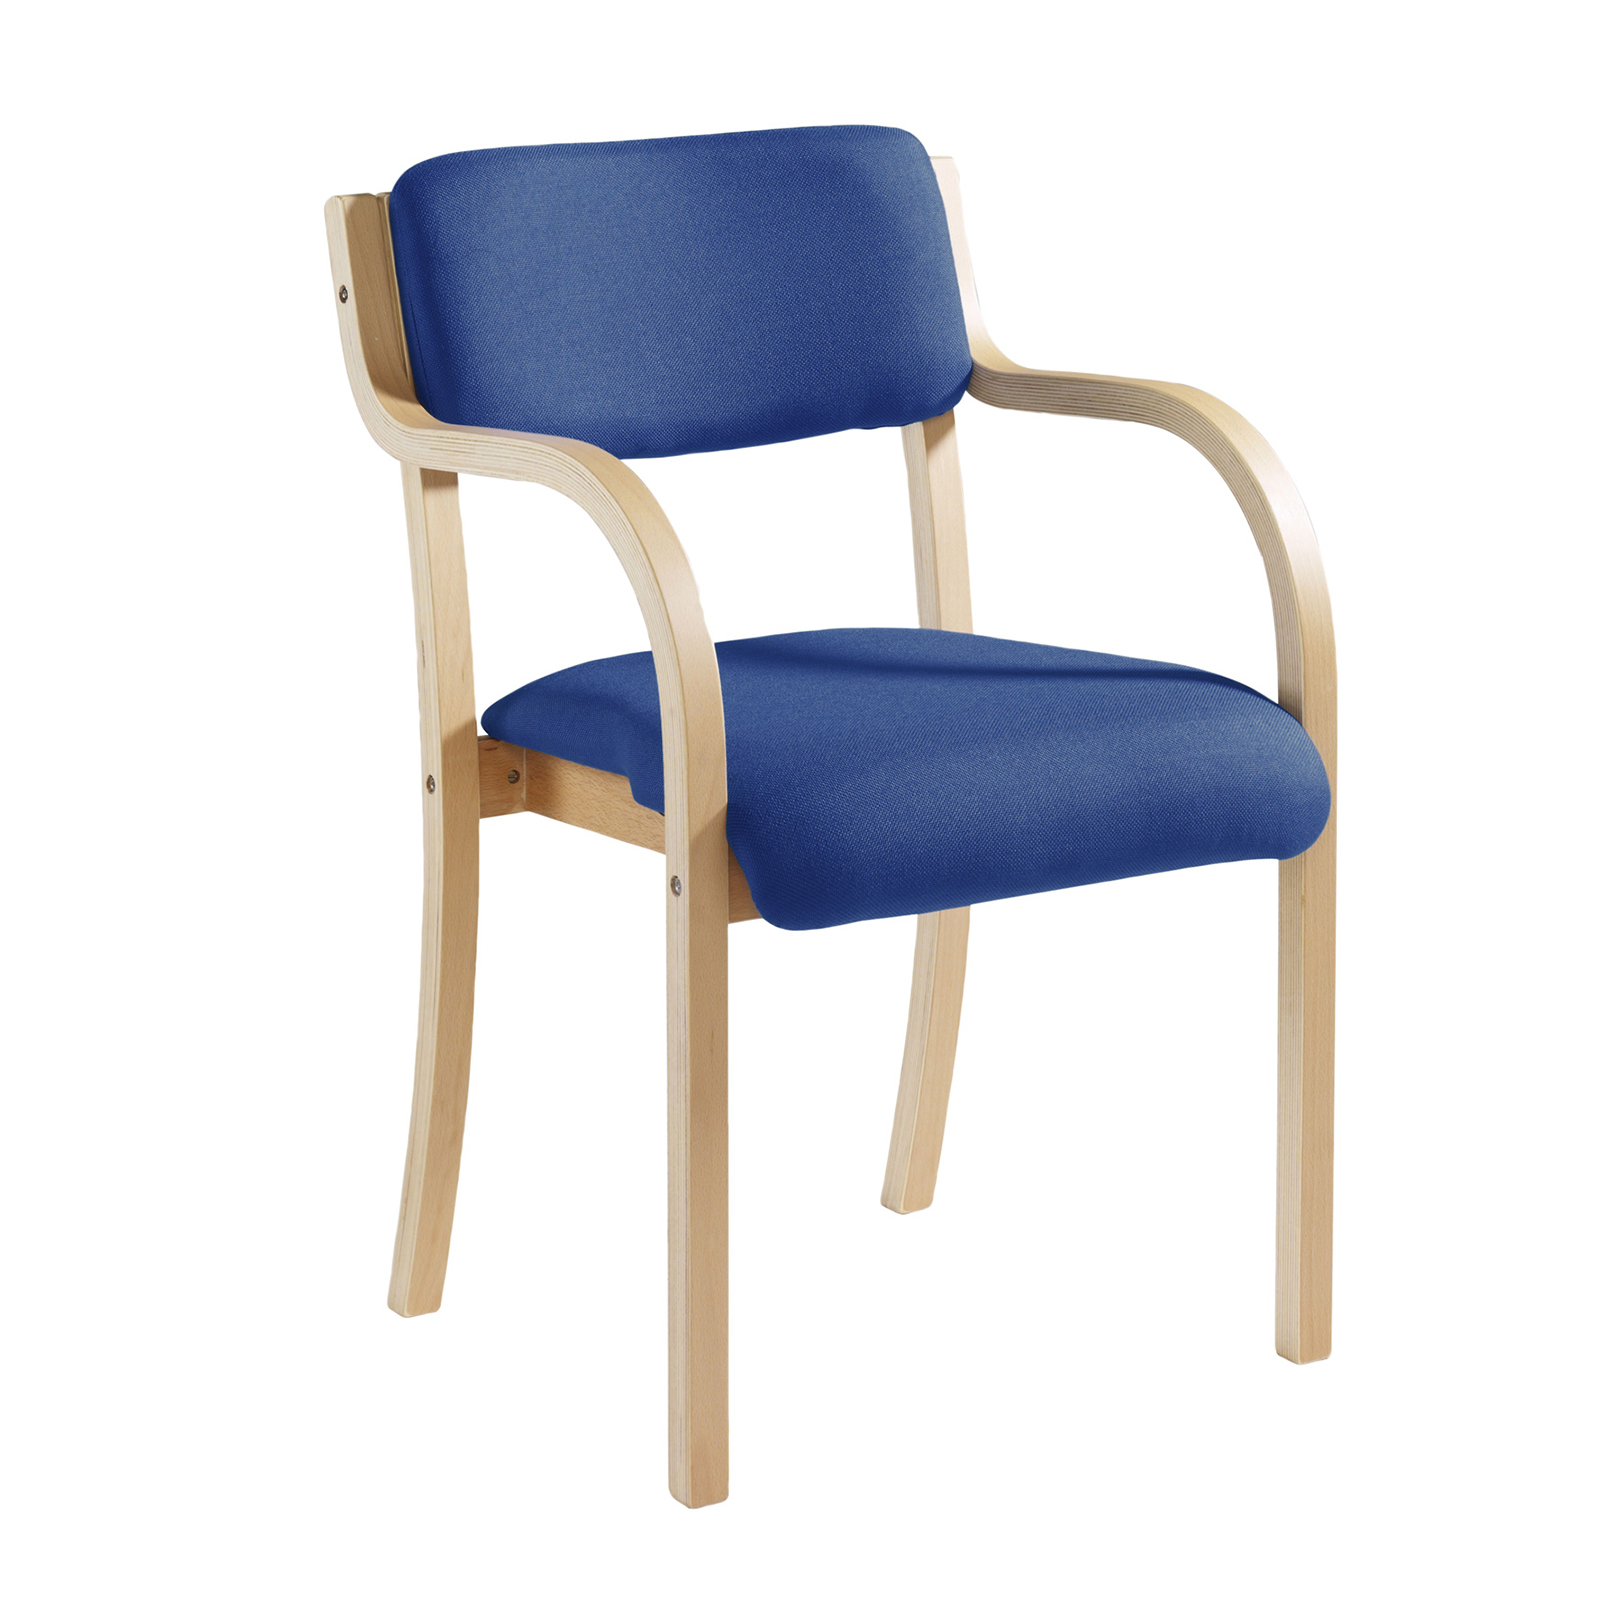 Prague wooden conference chair with double arms - blue